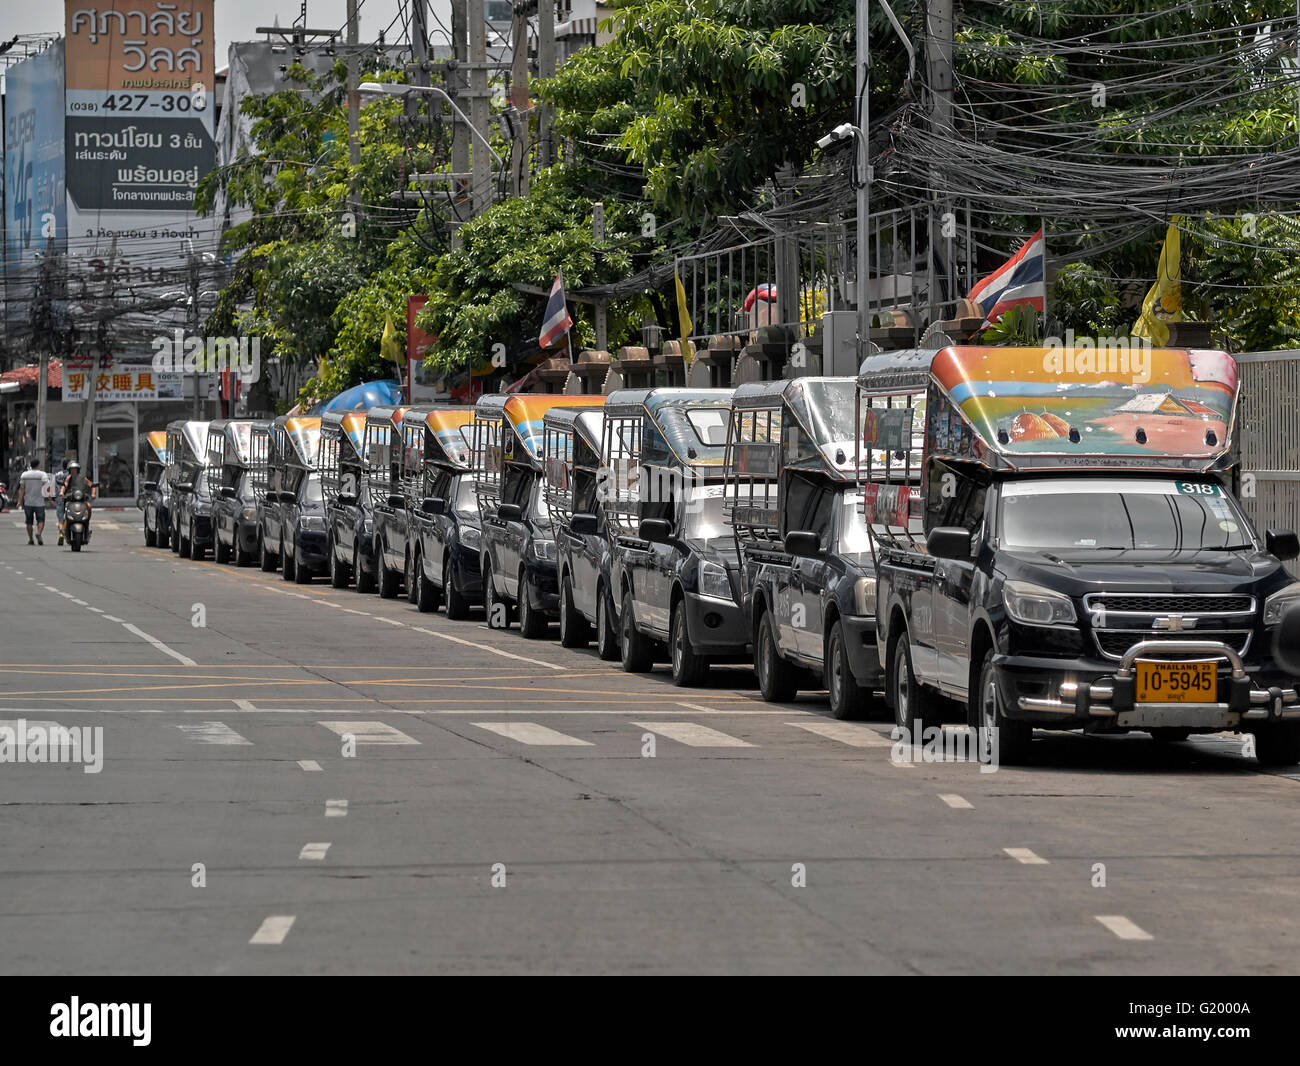 Line of Thai songthaew taxi vehicles. Thailand S. E. Asia - Stock Image